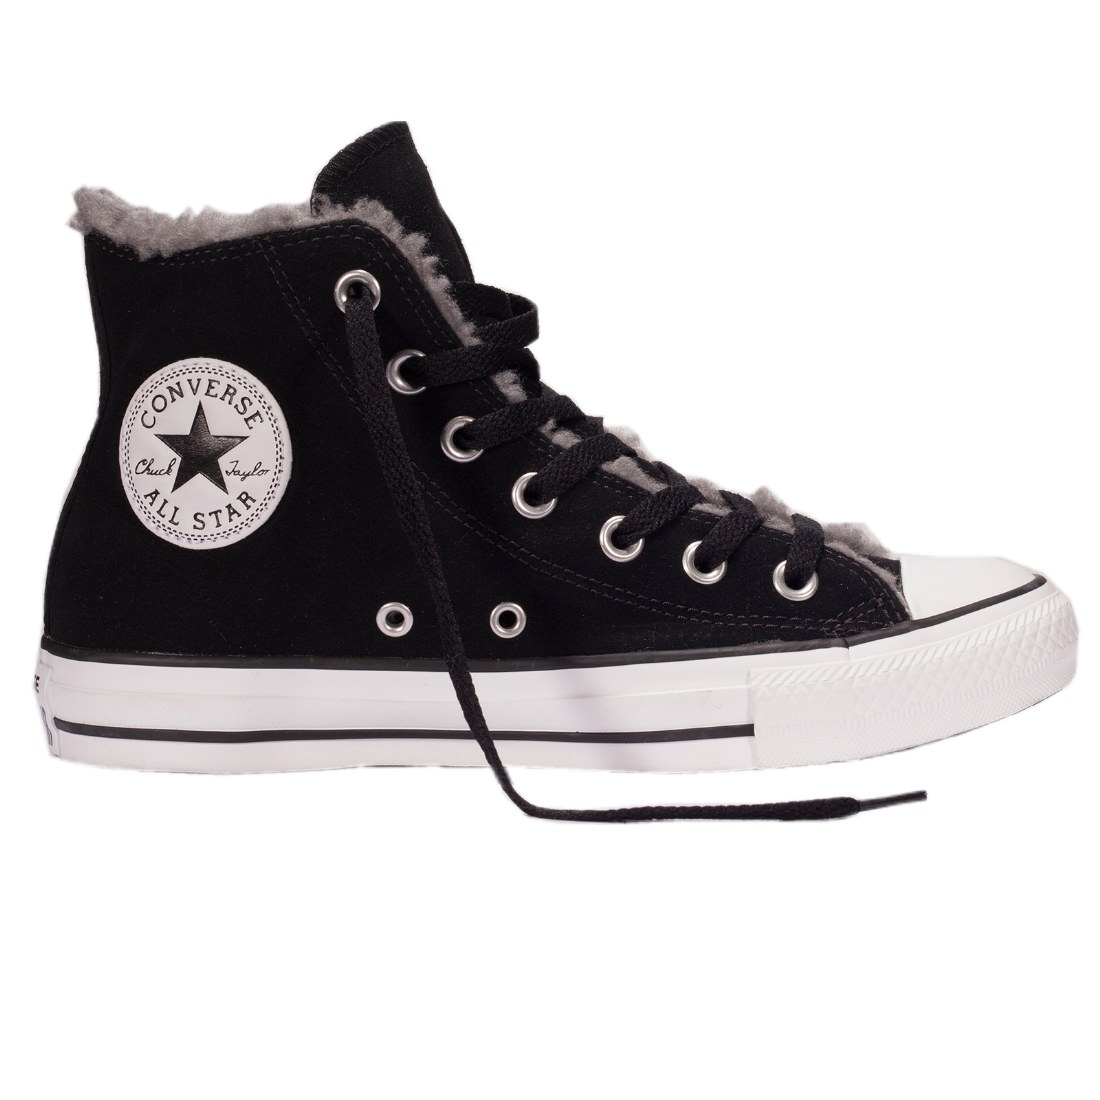 converse herren sneaker. Black Bedroom Furniture Sets. Home Design Ideas